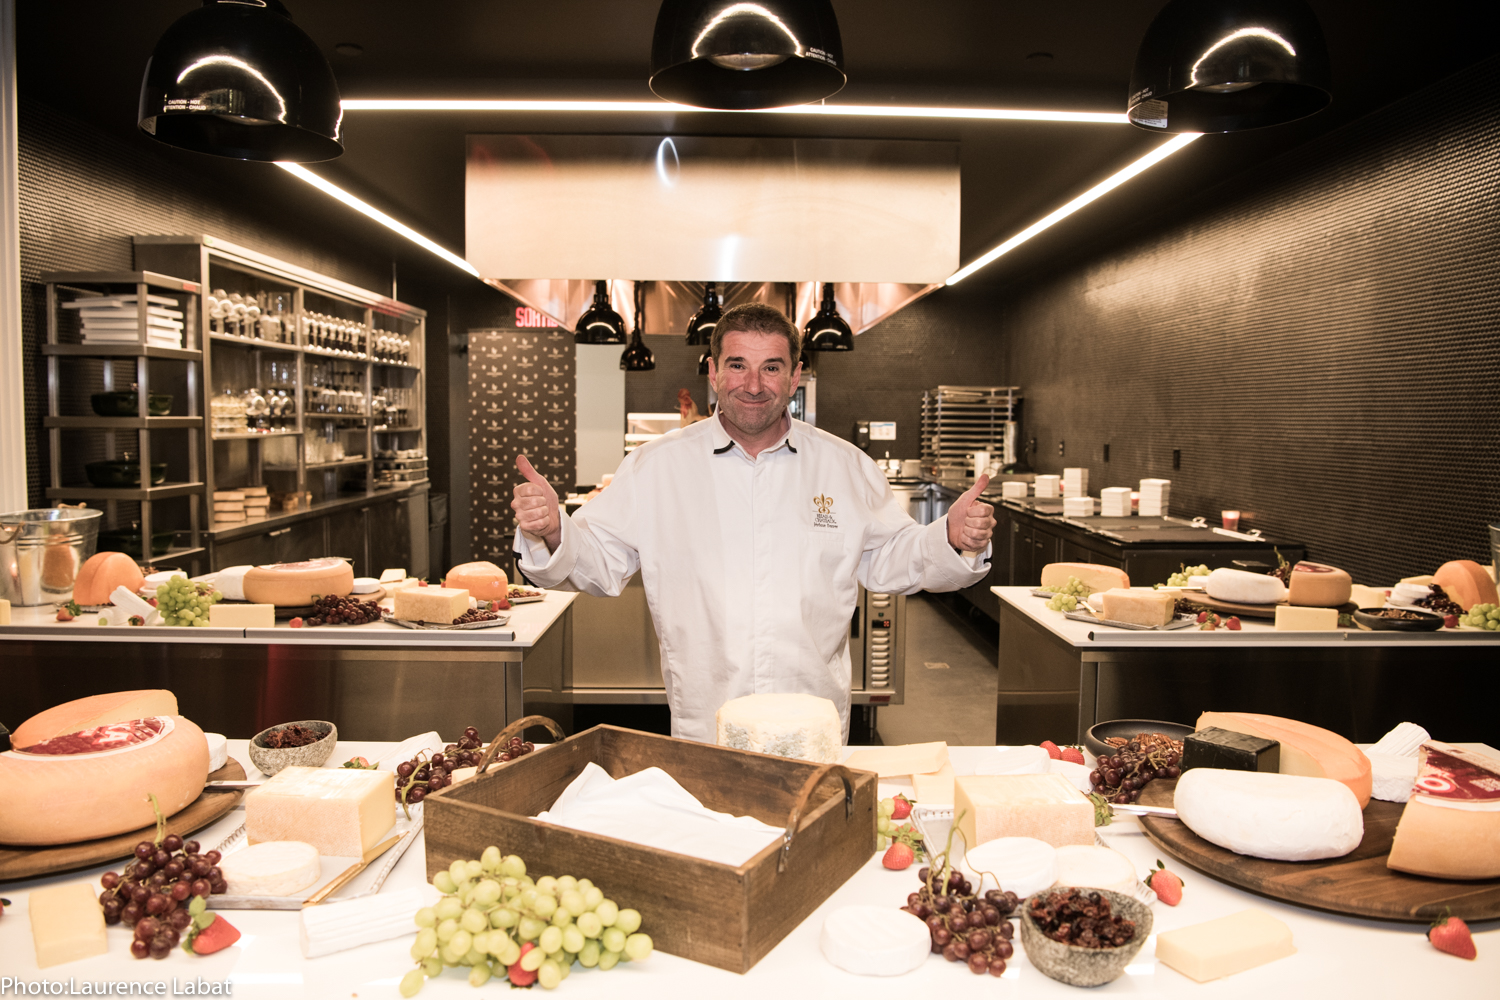 Europea Has a Beefed-Up New Location Complete With Cocktail Lounge